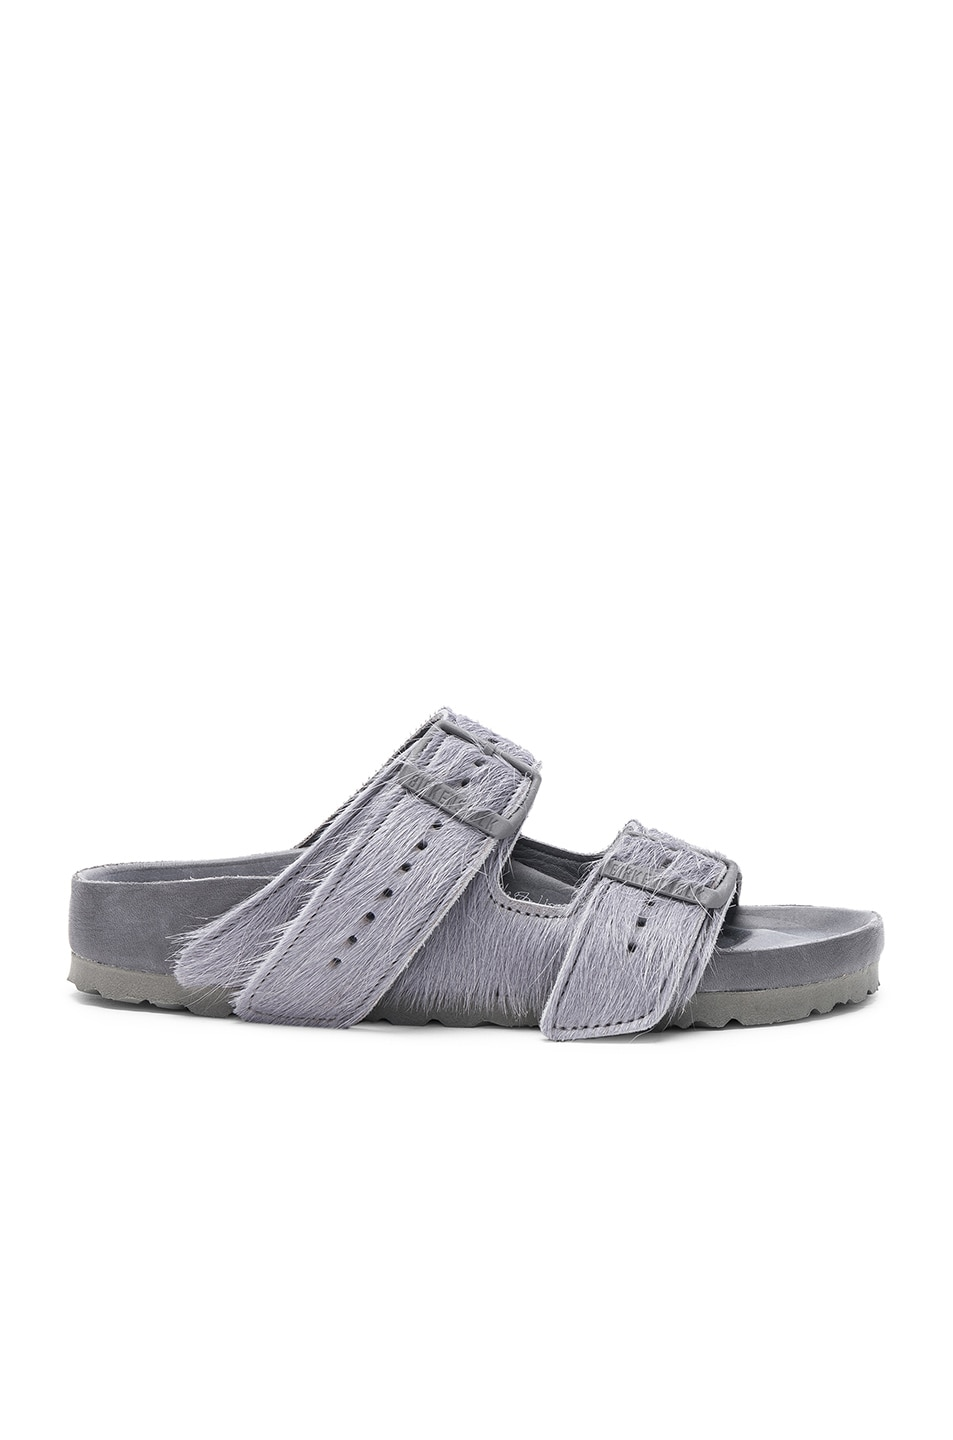 Image 1 of Rick Owens x Birkenstock Cow Hair Arizona Sandals in Grey